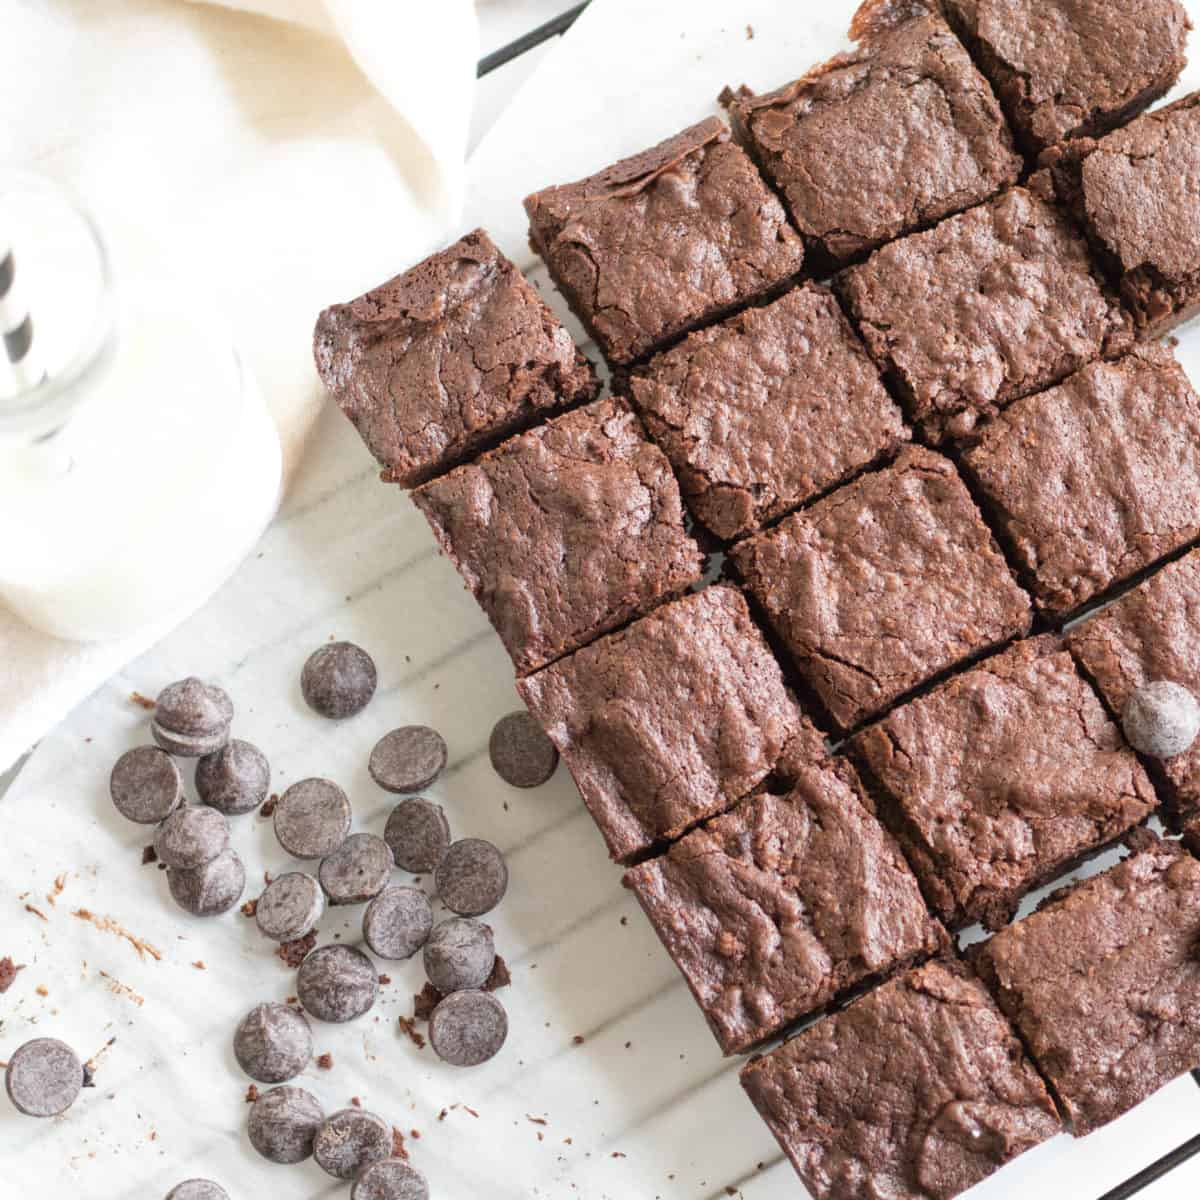 batch of brownies cut into squares with chocolate chips on a cooling rack.